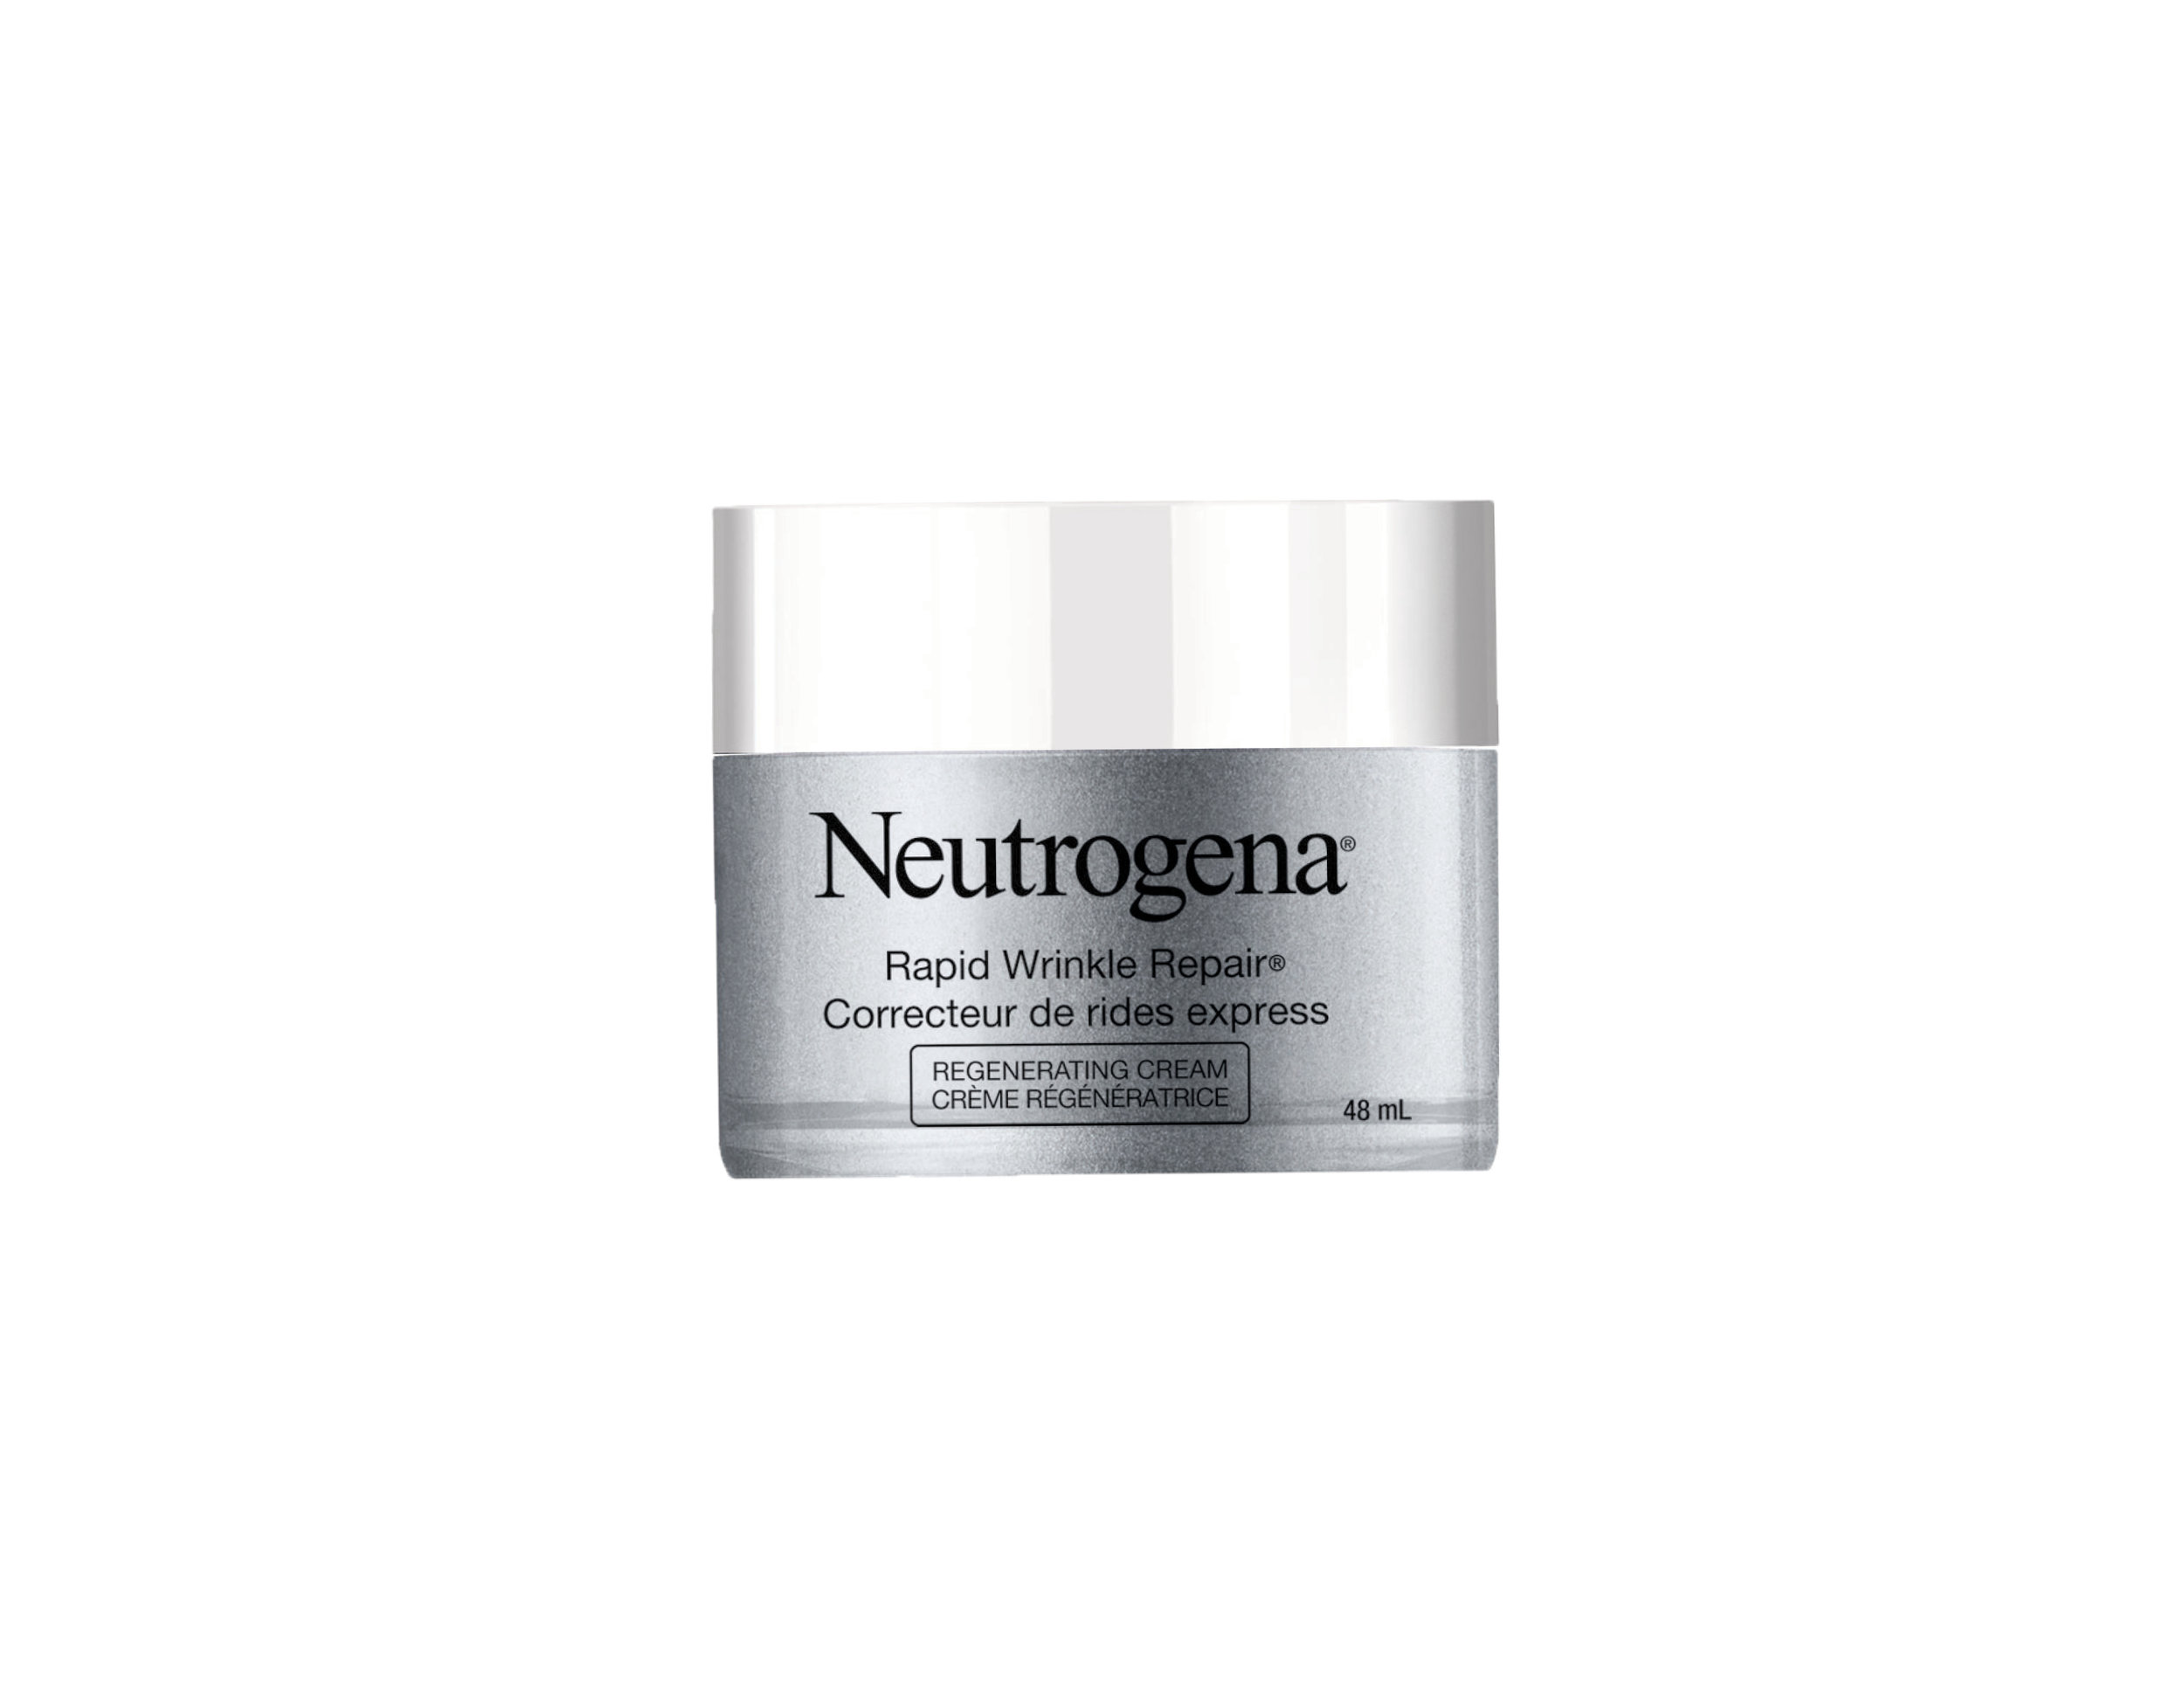 Neutrogena Rapid Wrinkle Repair Regenerating Cream, $36.99. Available at drug and mass retailers